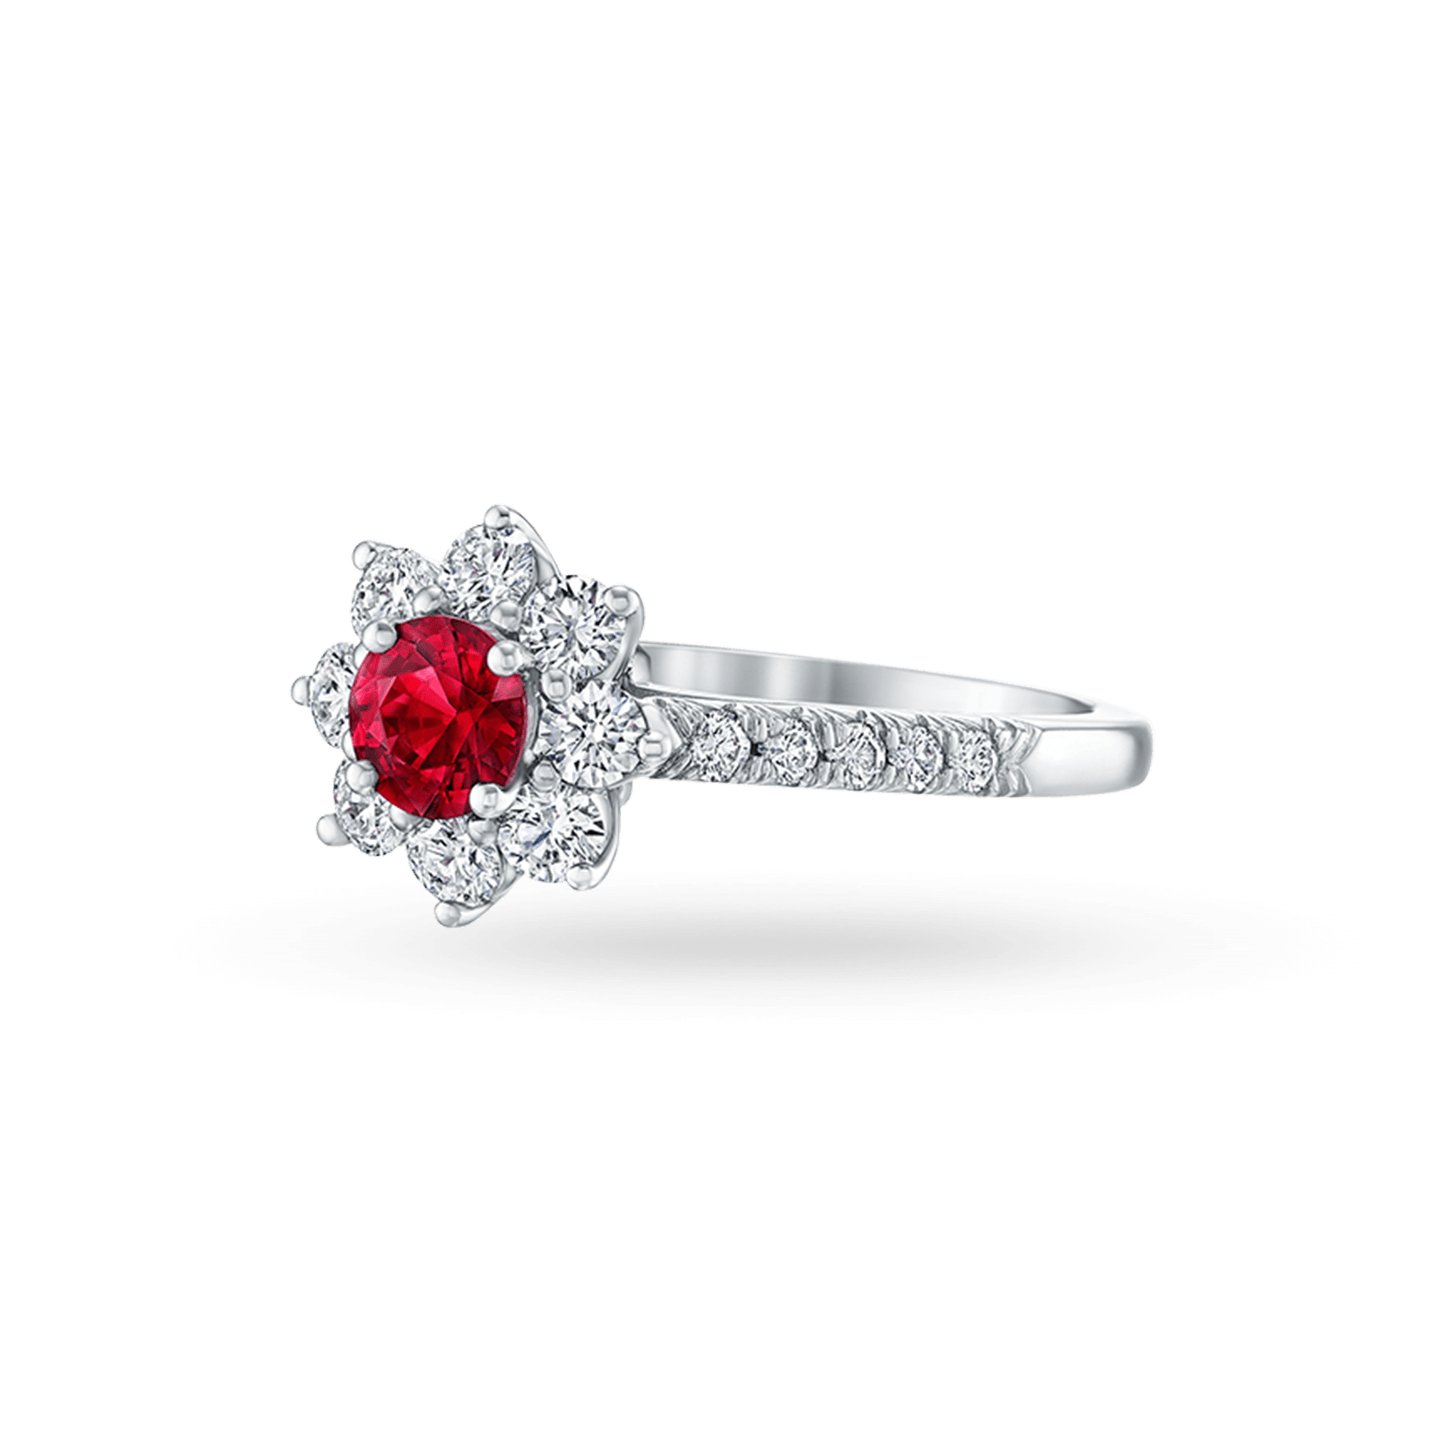 Sunflower Petite Ruby and Diamond Ring, Product Image 2